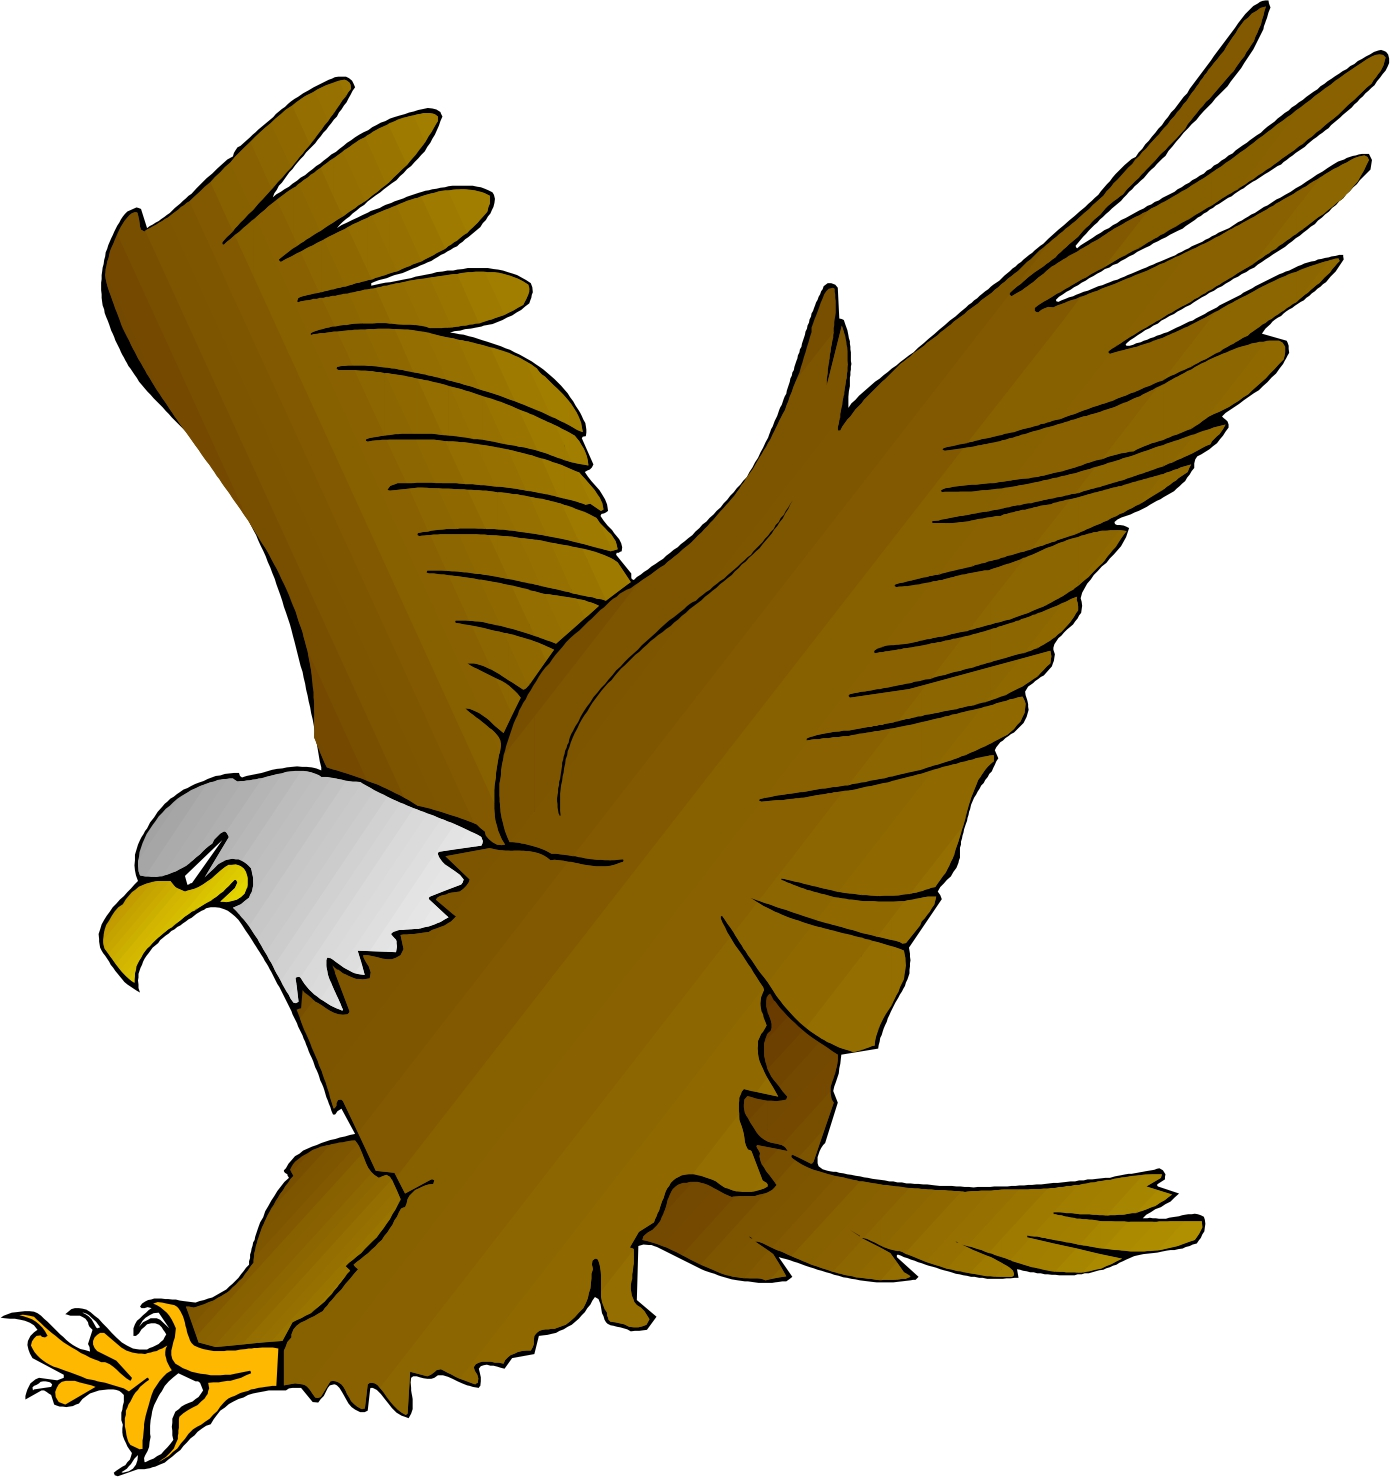 Eagle clipart #4, Download drawings